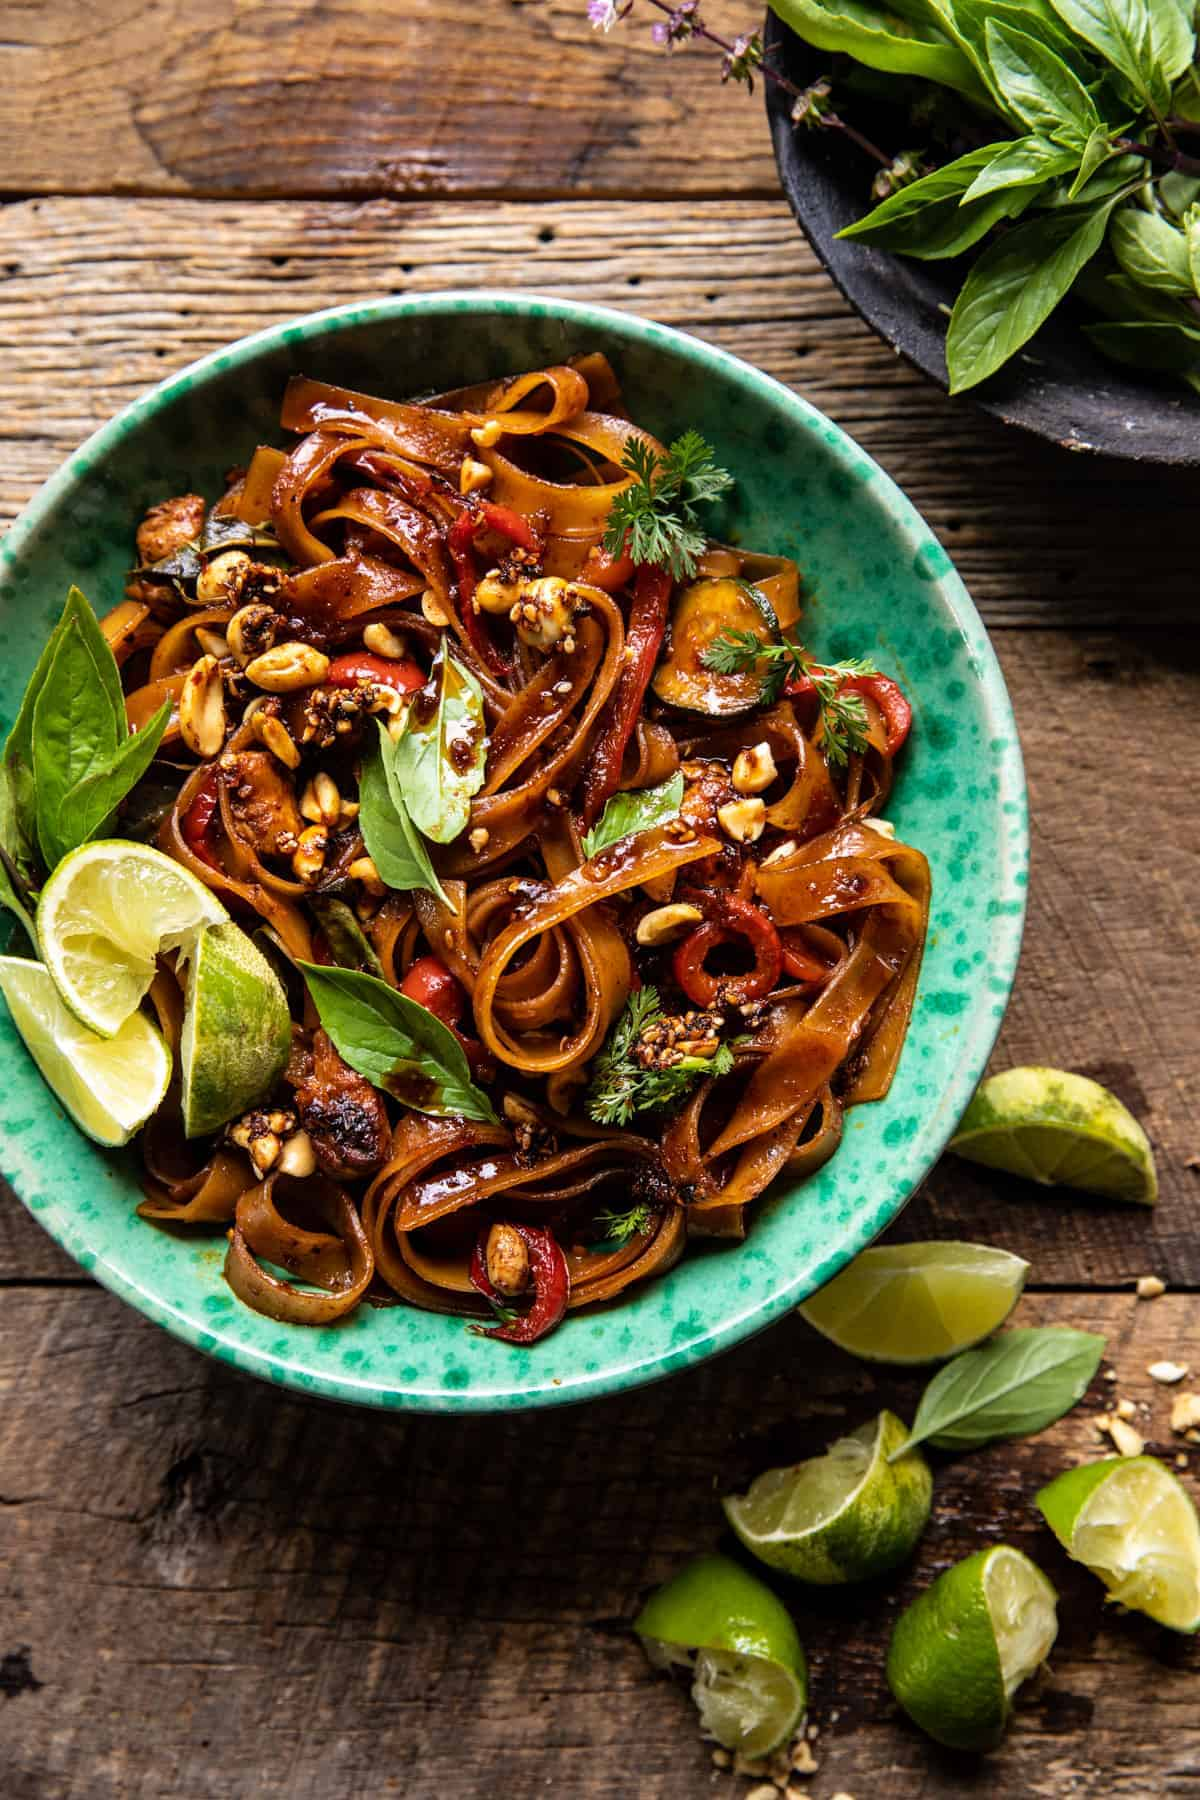 Saucy Thai Summer Noodle Stir Fry with Sesame Peanuts